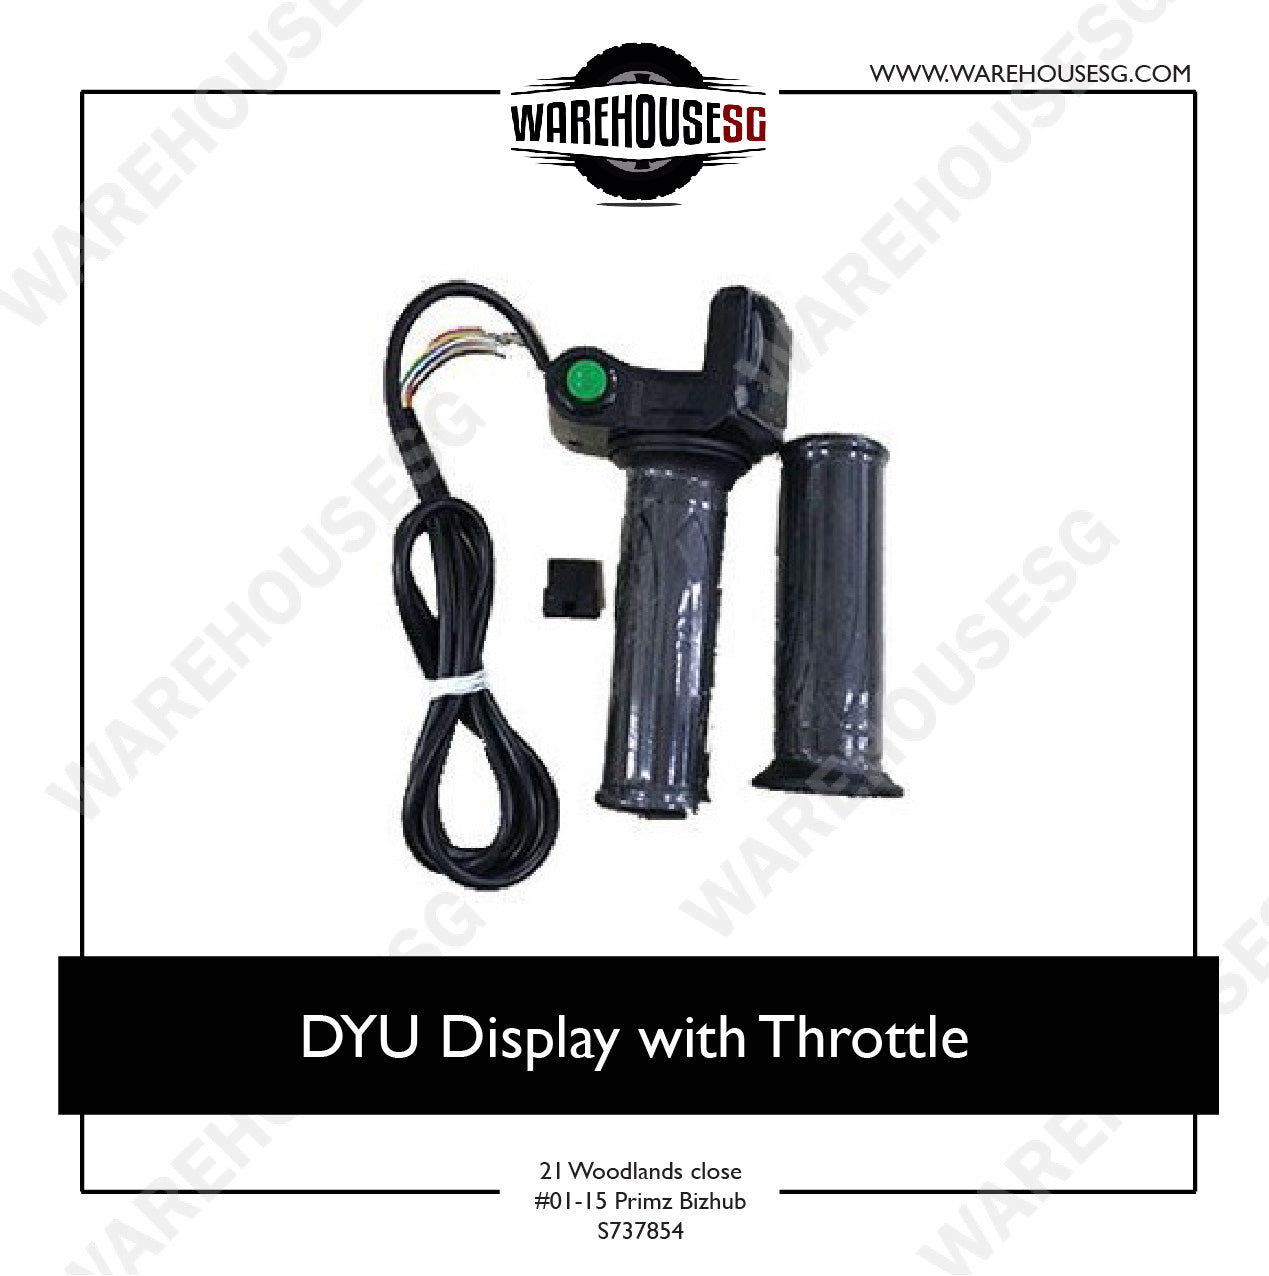 DYU Display with Throttle